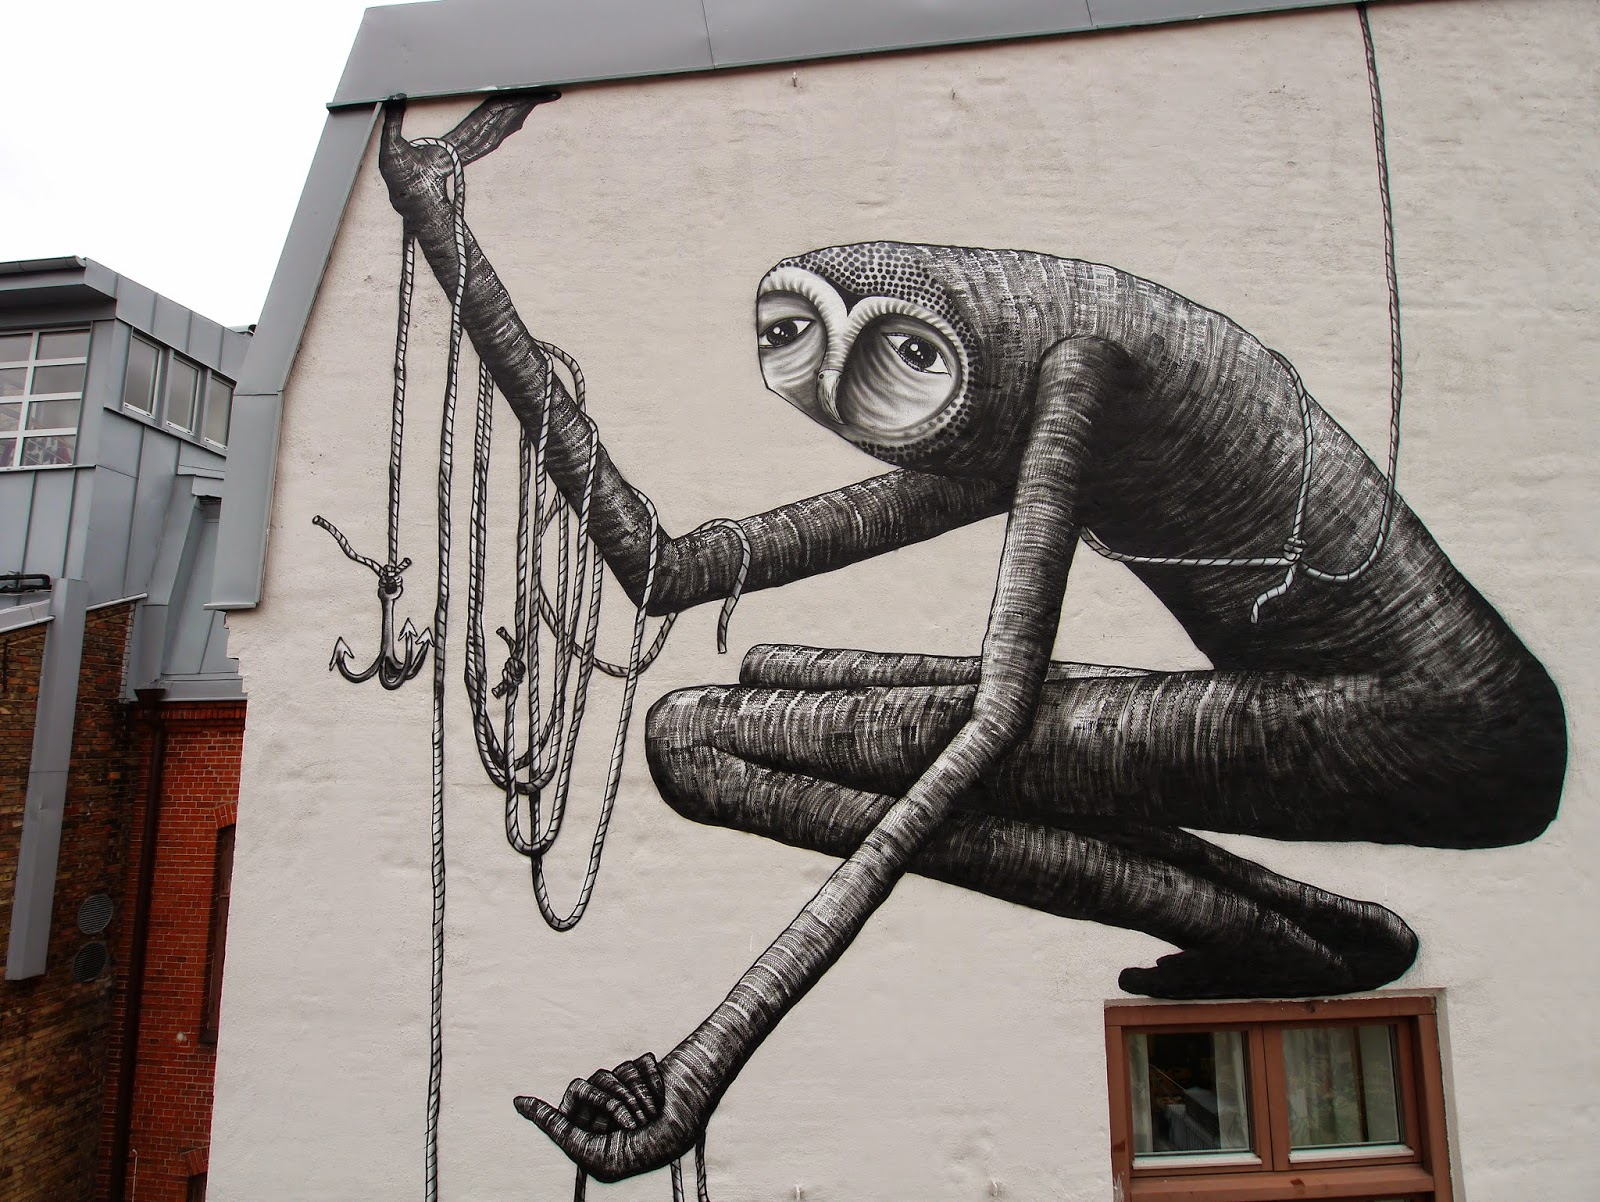 phlegm-new-mural-for-artscape-festival-2014-02